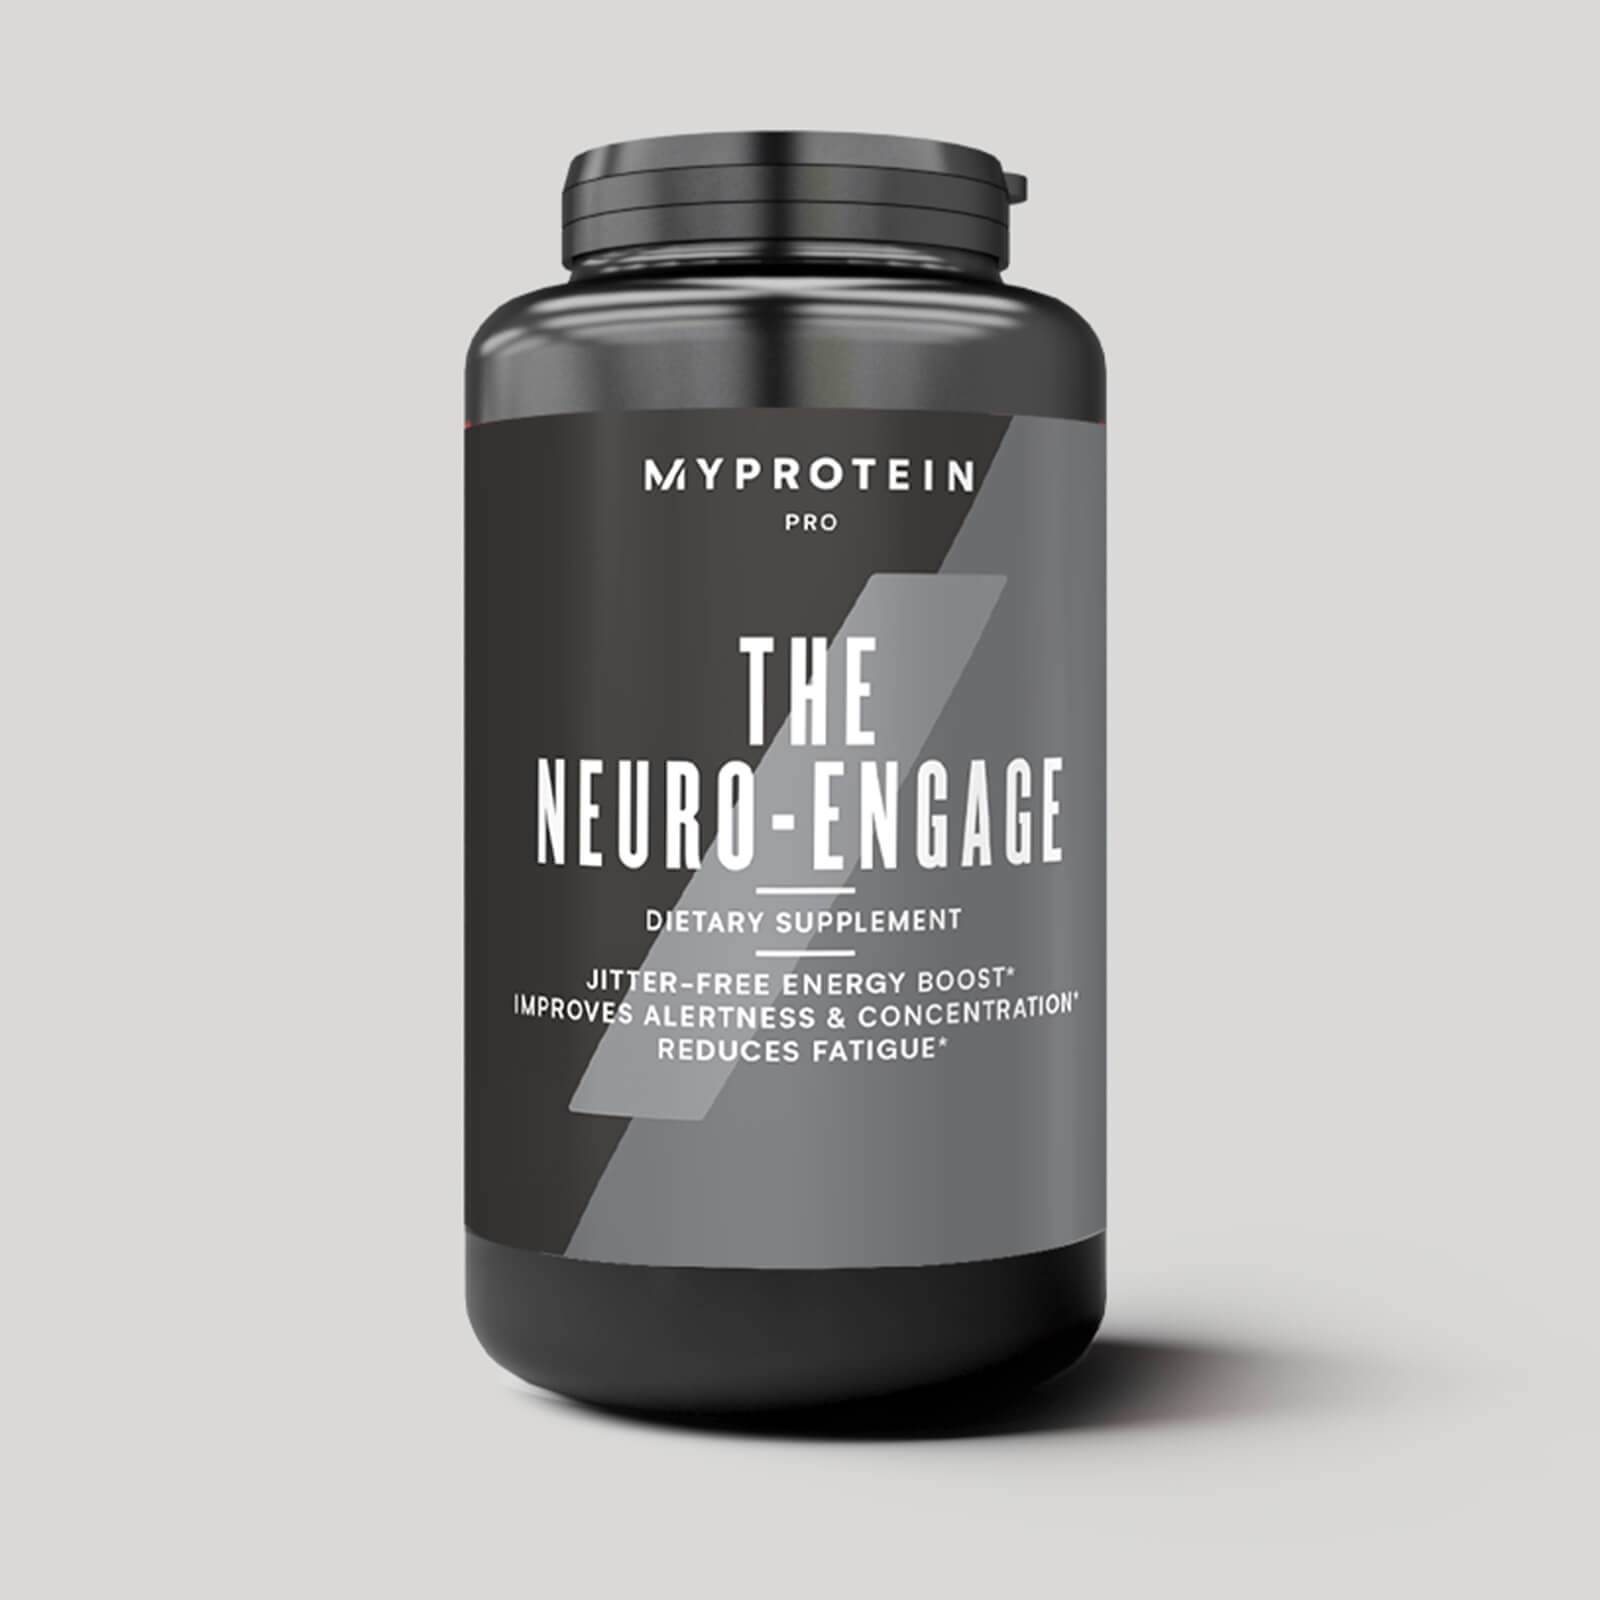 Myprotein THE Neuro Engage - 60capsules - Jar - Unflavoured